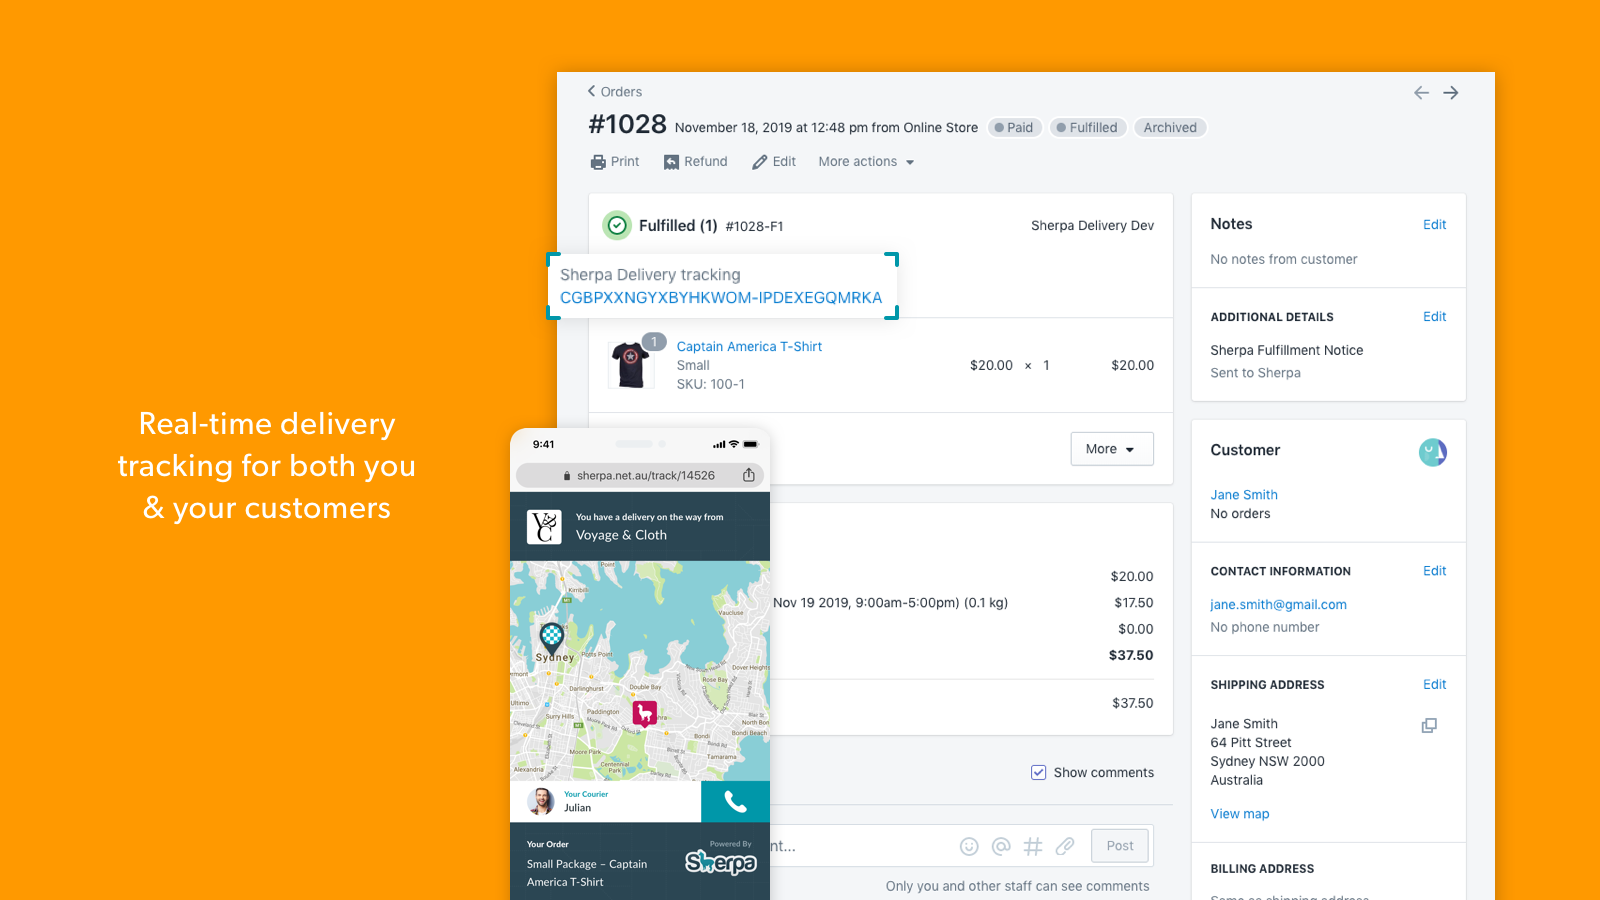 Real-time delivery tracking